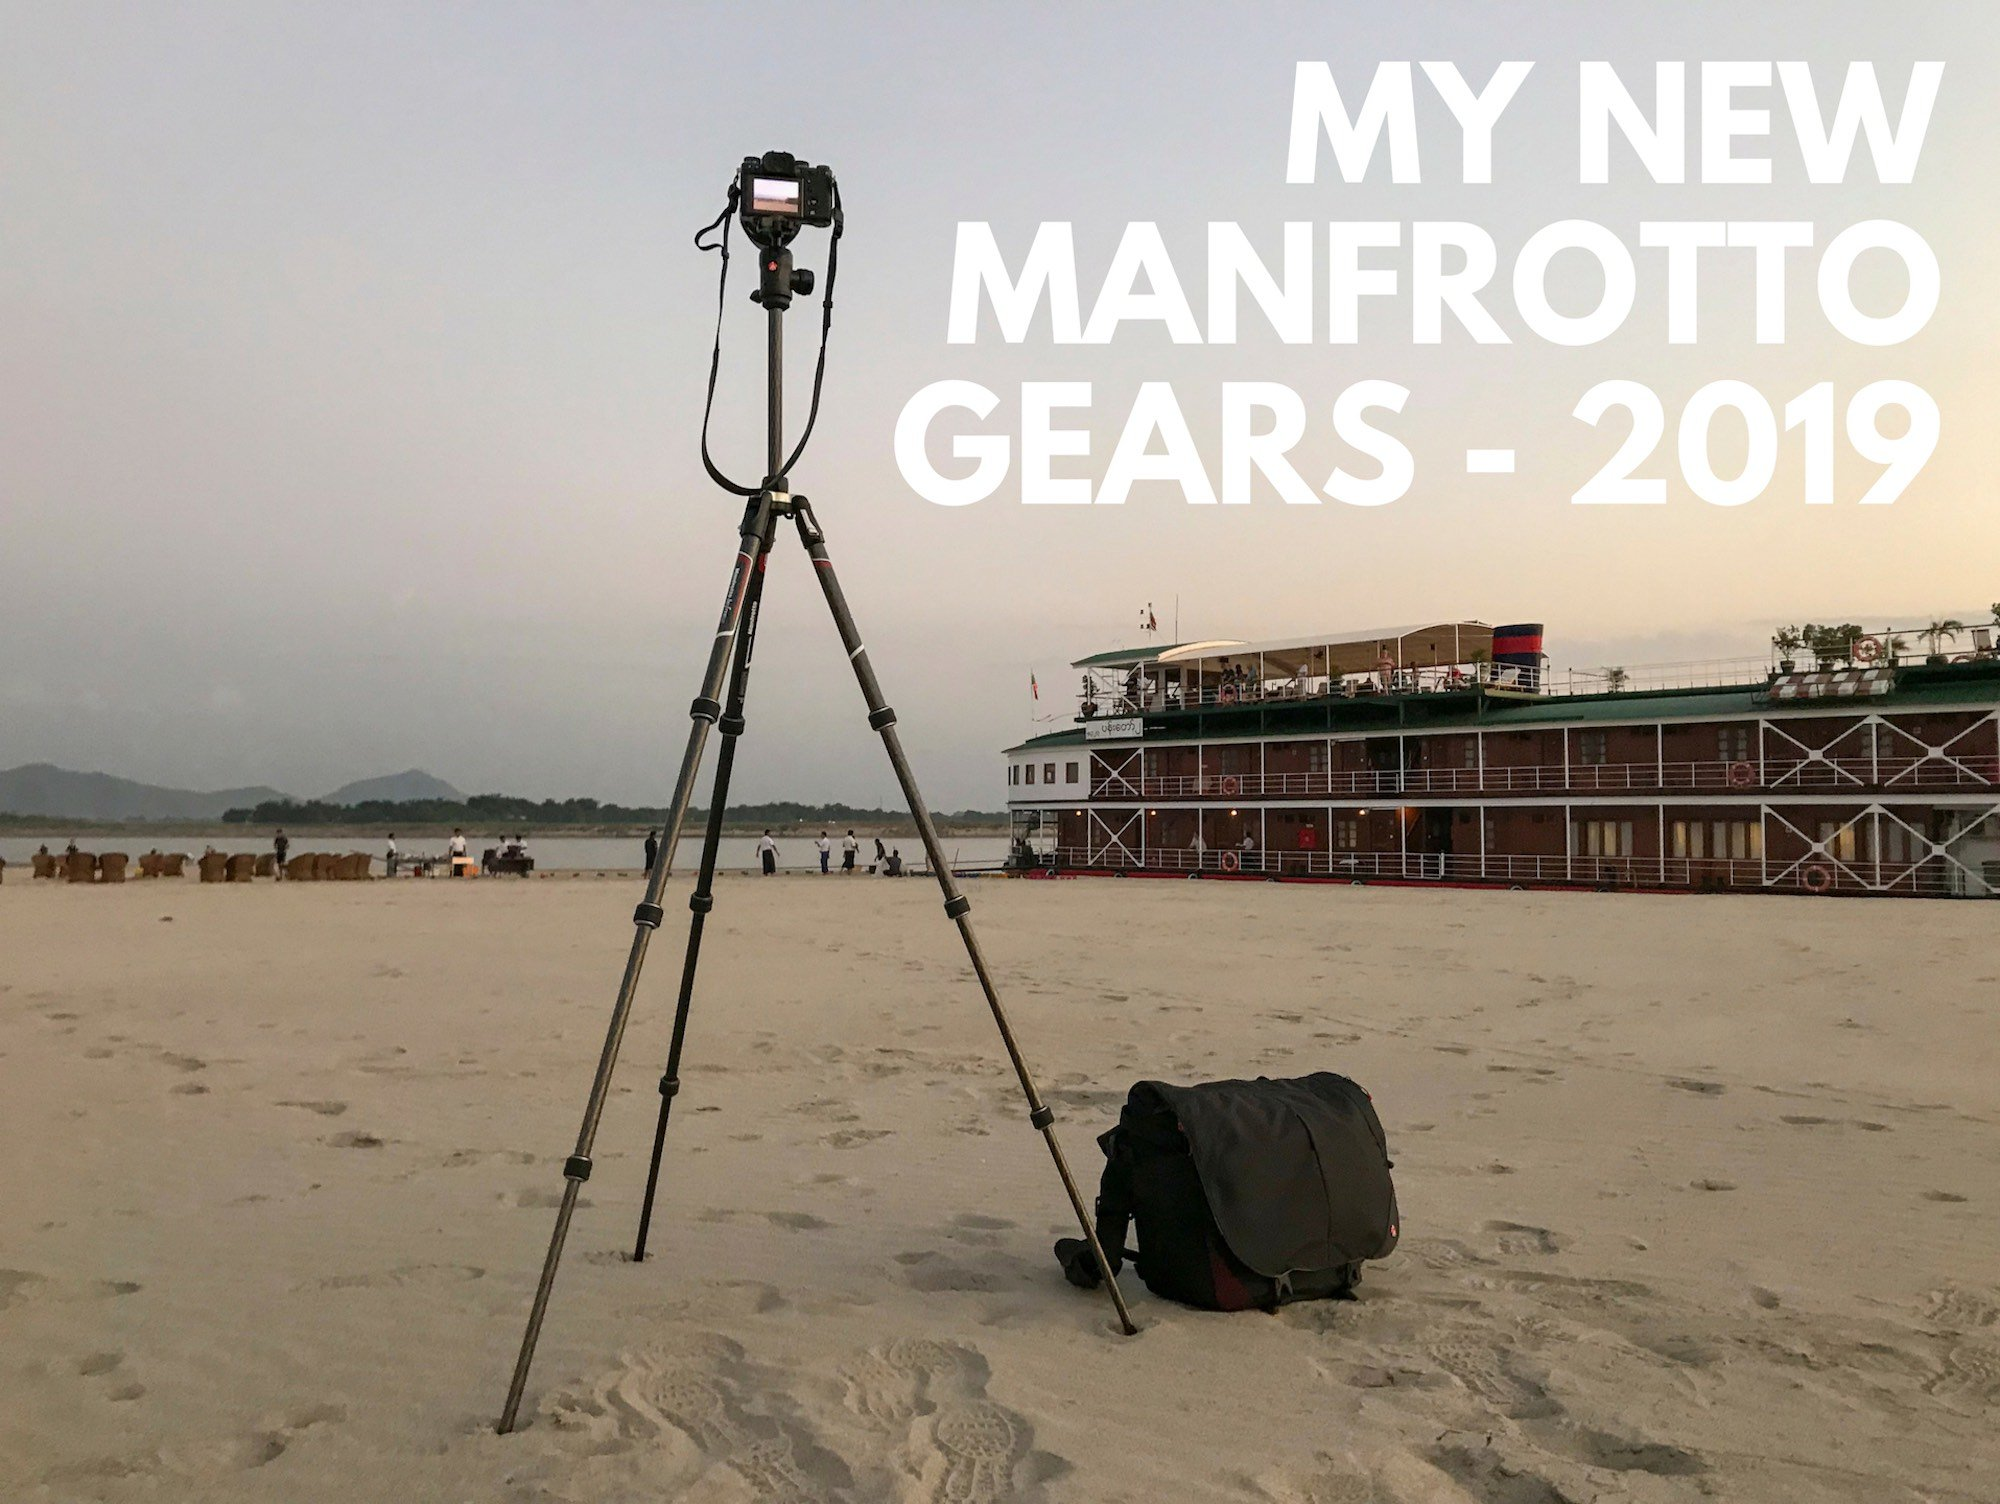 My new Manfrotto gears for 2019